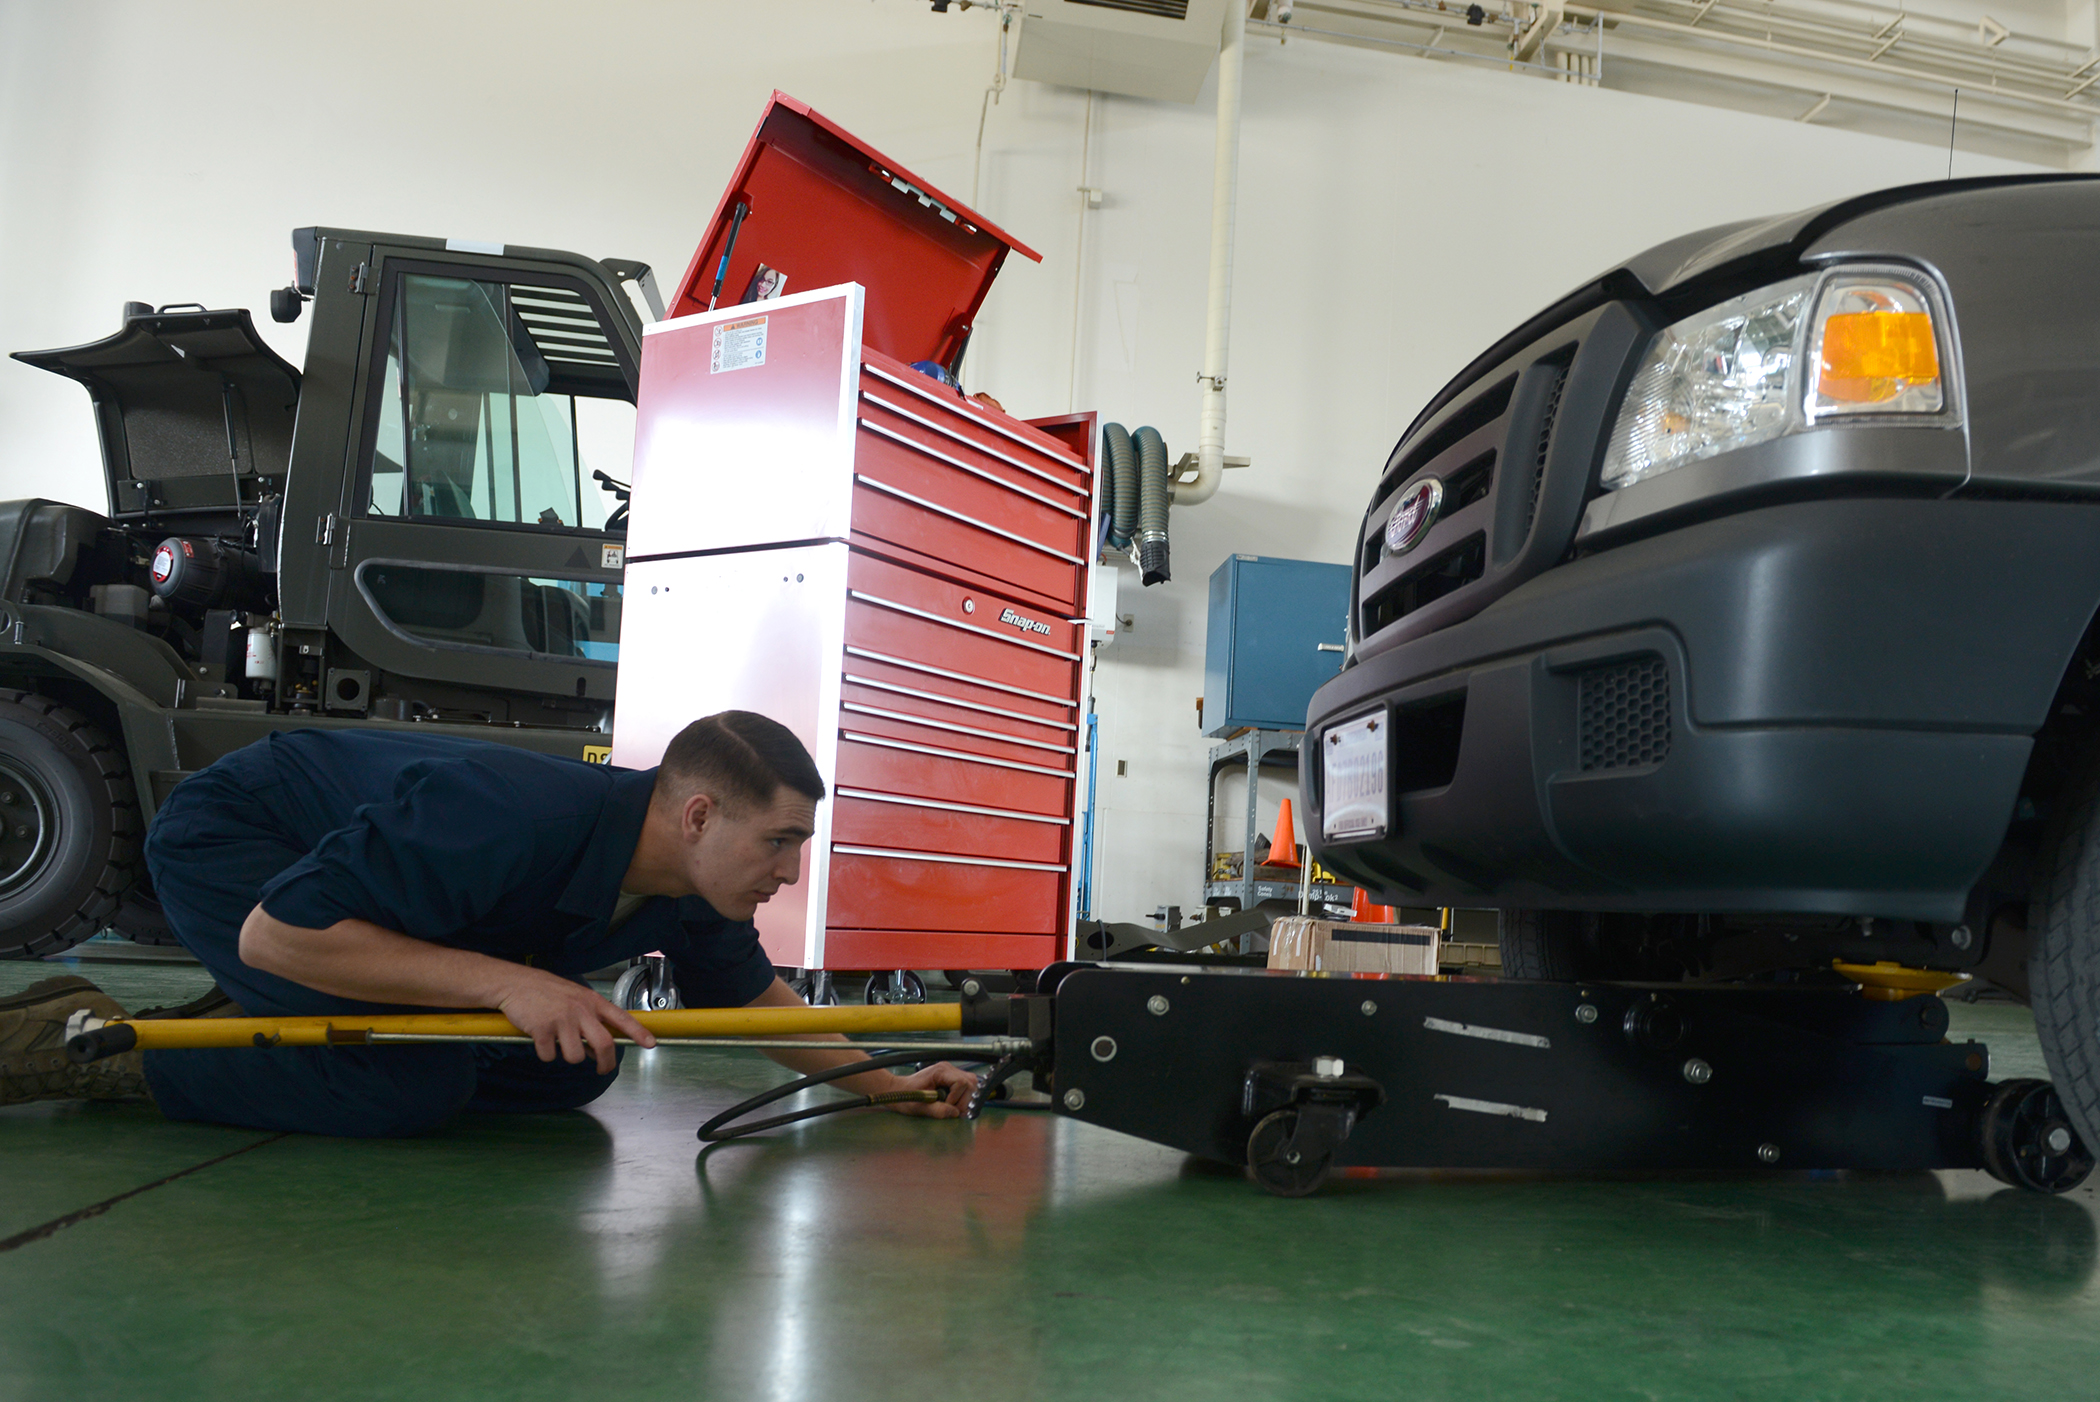 Senior Airman Brandon Higginbotham, 374th Logistics Readiness Squadron vehicle maintenance journeyman, positions a jack under a government vehicle at Yokota Air Base, Japan, April 28, 2015. The truck was brought into the vehicle maintenance shop to assess the front brakes. (U.S. Air Force photo by Airman 1st Class David C. Danford/Released)